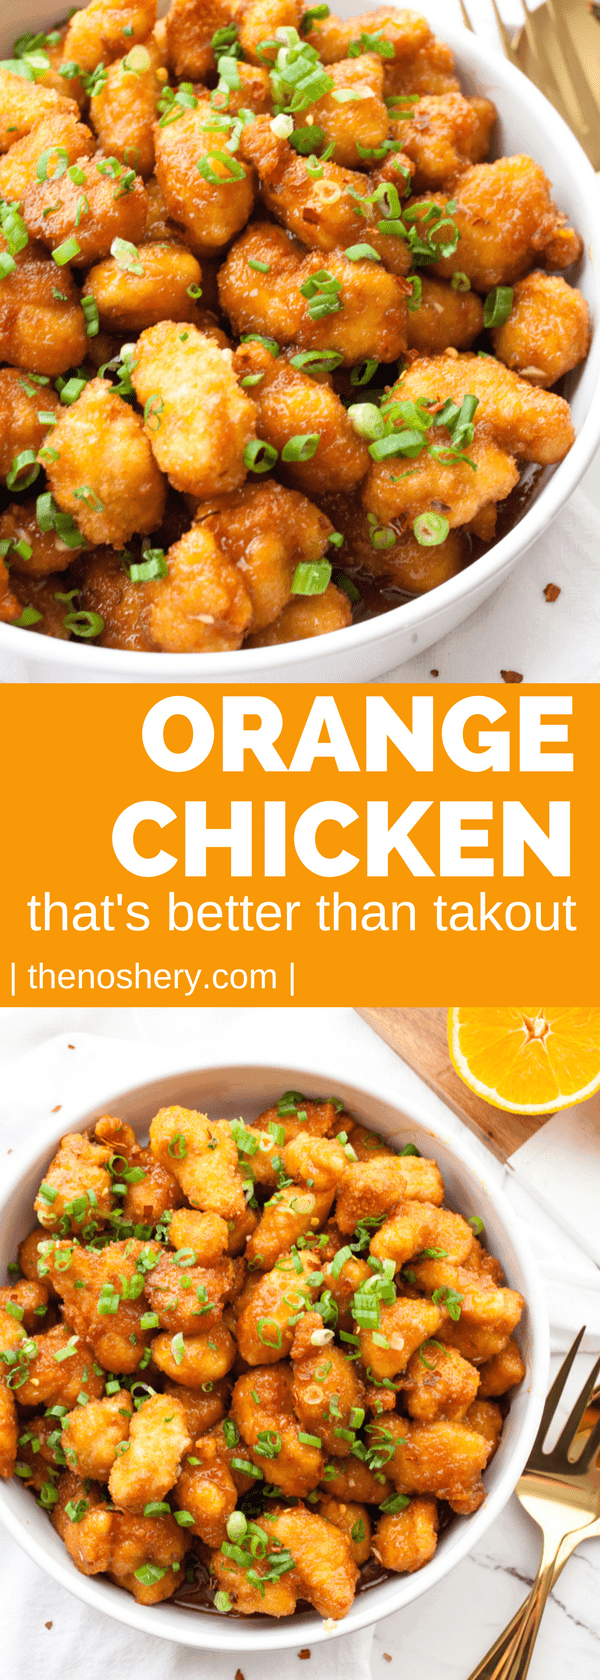 Orange chicken with a light crispy breading & a sweet and tangy sauce. There is no lack of orange flavor, & the red pepper flakes give it a touch of heat. | The Noshery